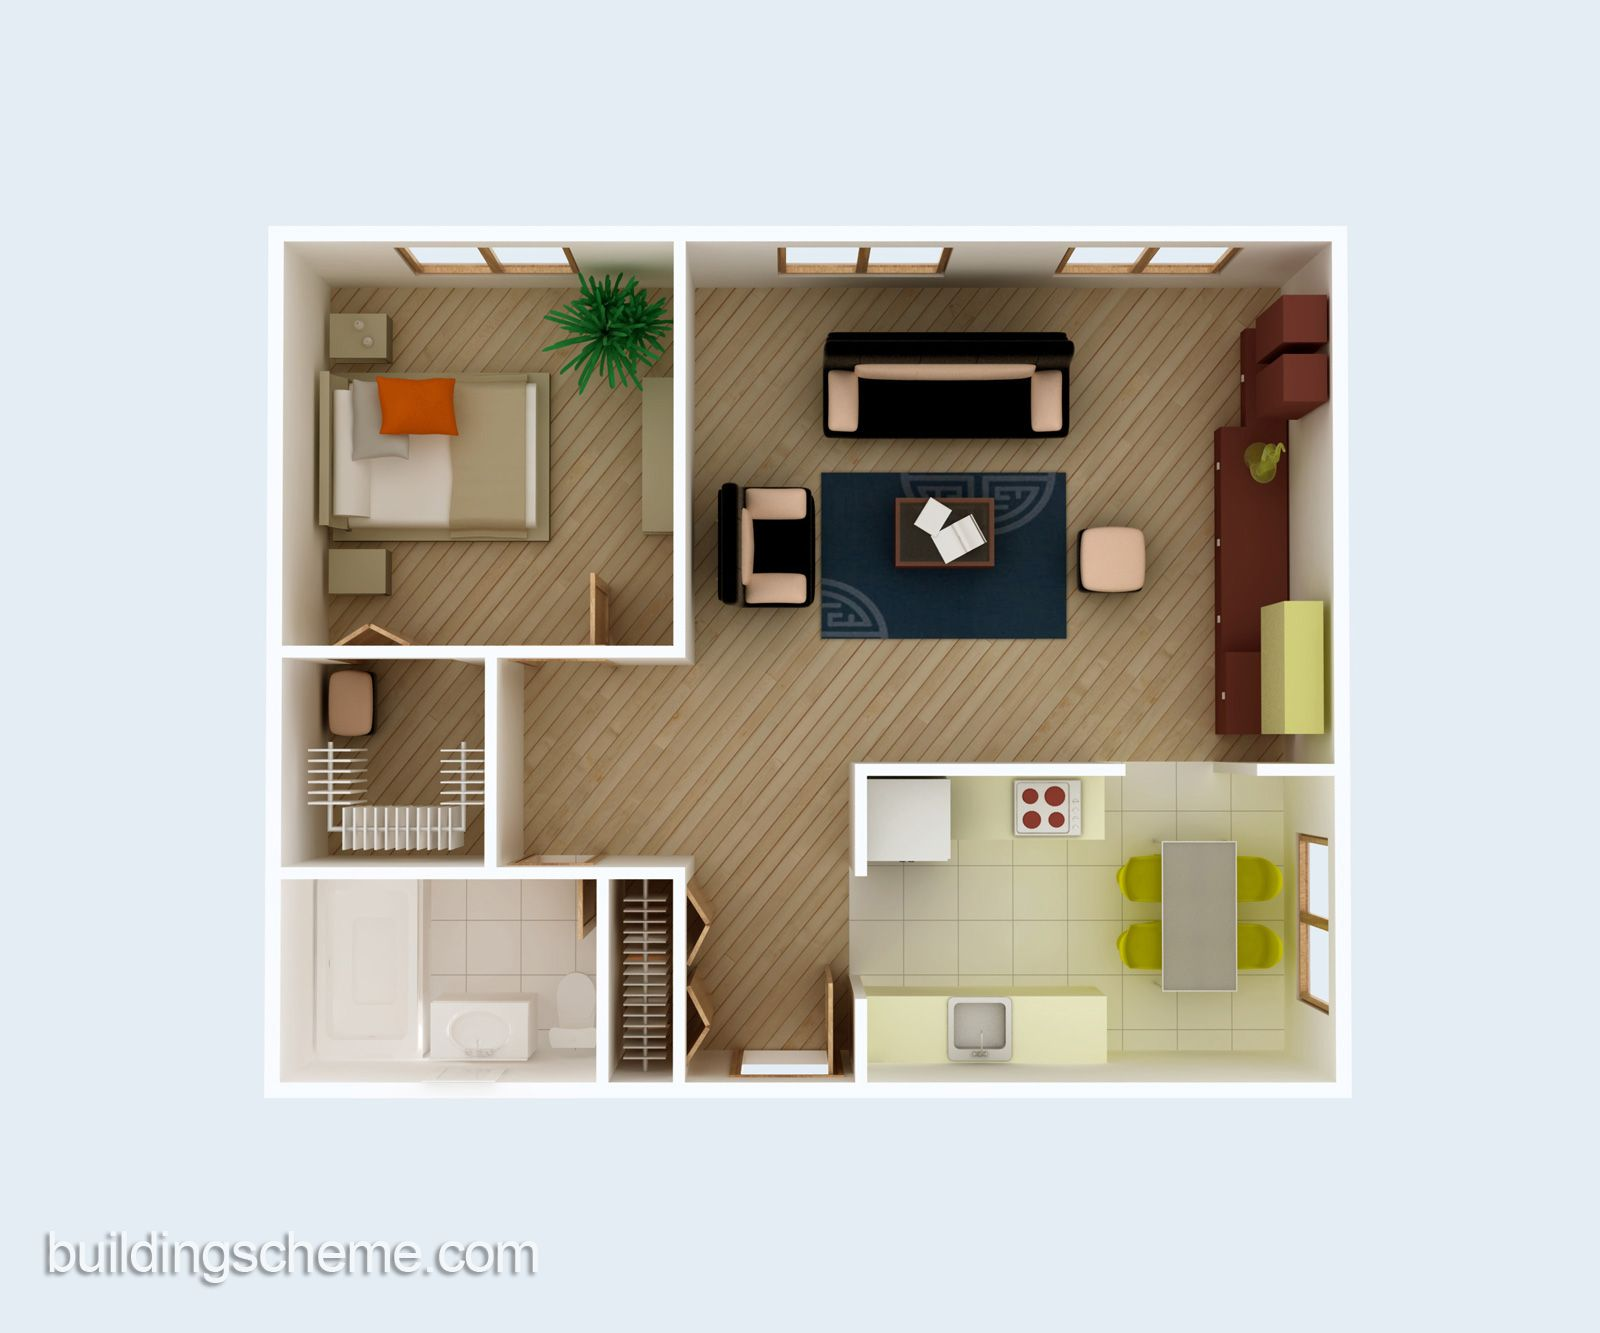 Good 3D Building Scheme and Floor Plans Ideas for House and Office ...